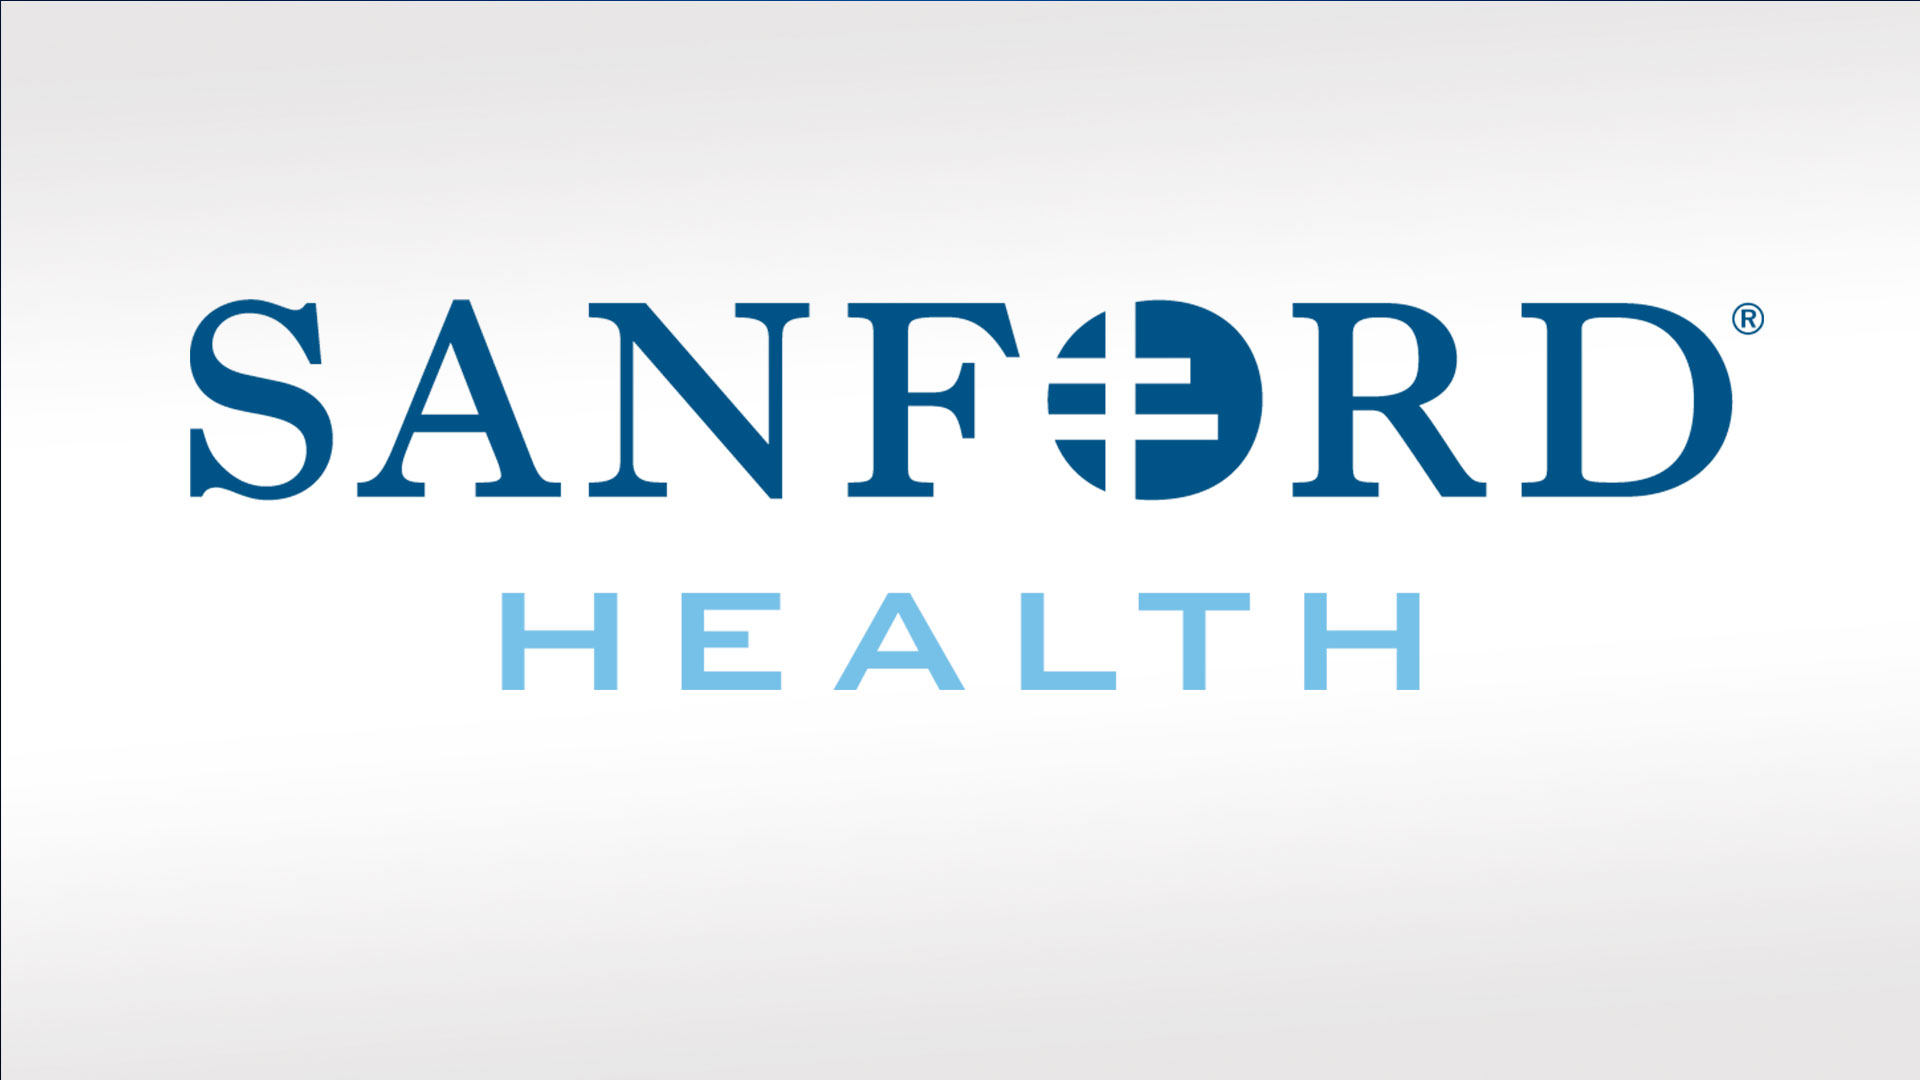 Sanford Health, VA To Use Specialized Testing To Improve Health Care For Veterans